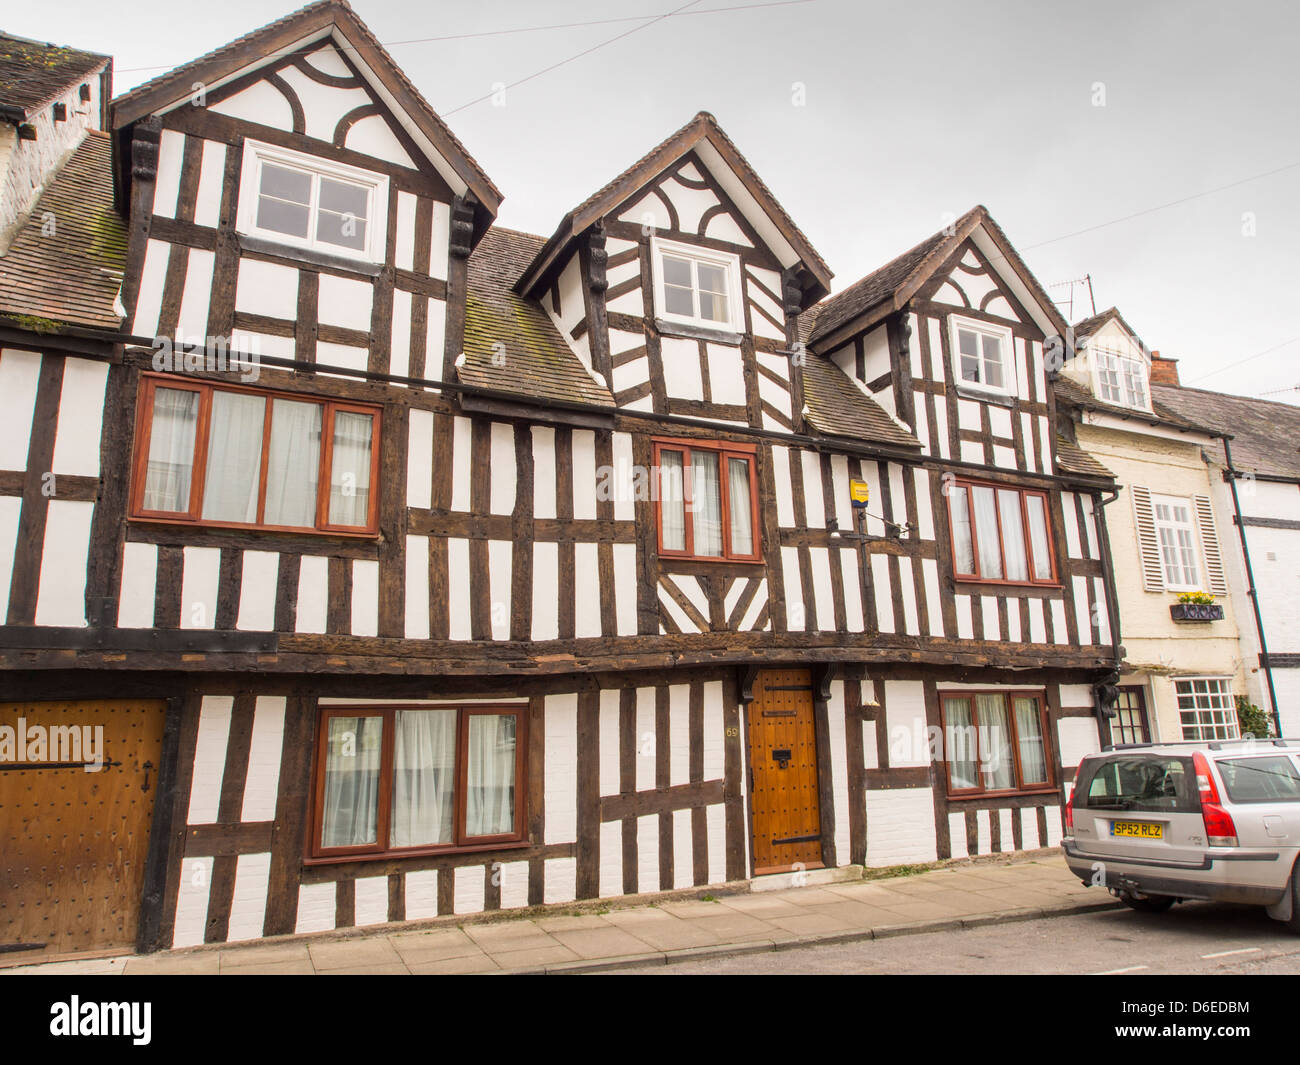 ancient jacobean timber framed houses on corve street in ludlow